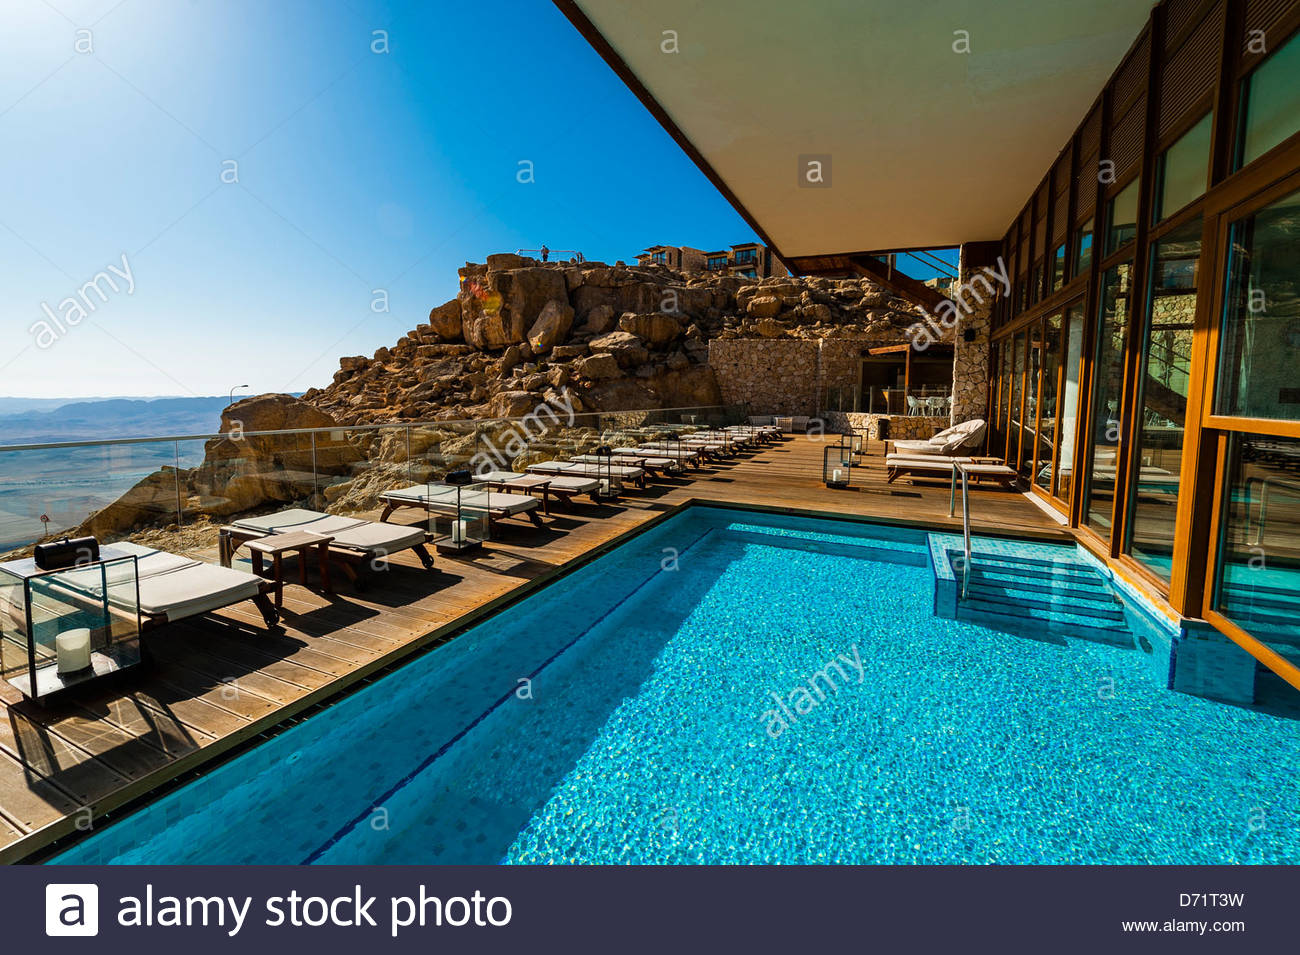 Swimming Pool Beresheet Hotel Mitzpe Ramon Negev Desert Israel Stock Photo Royalty Free